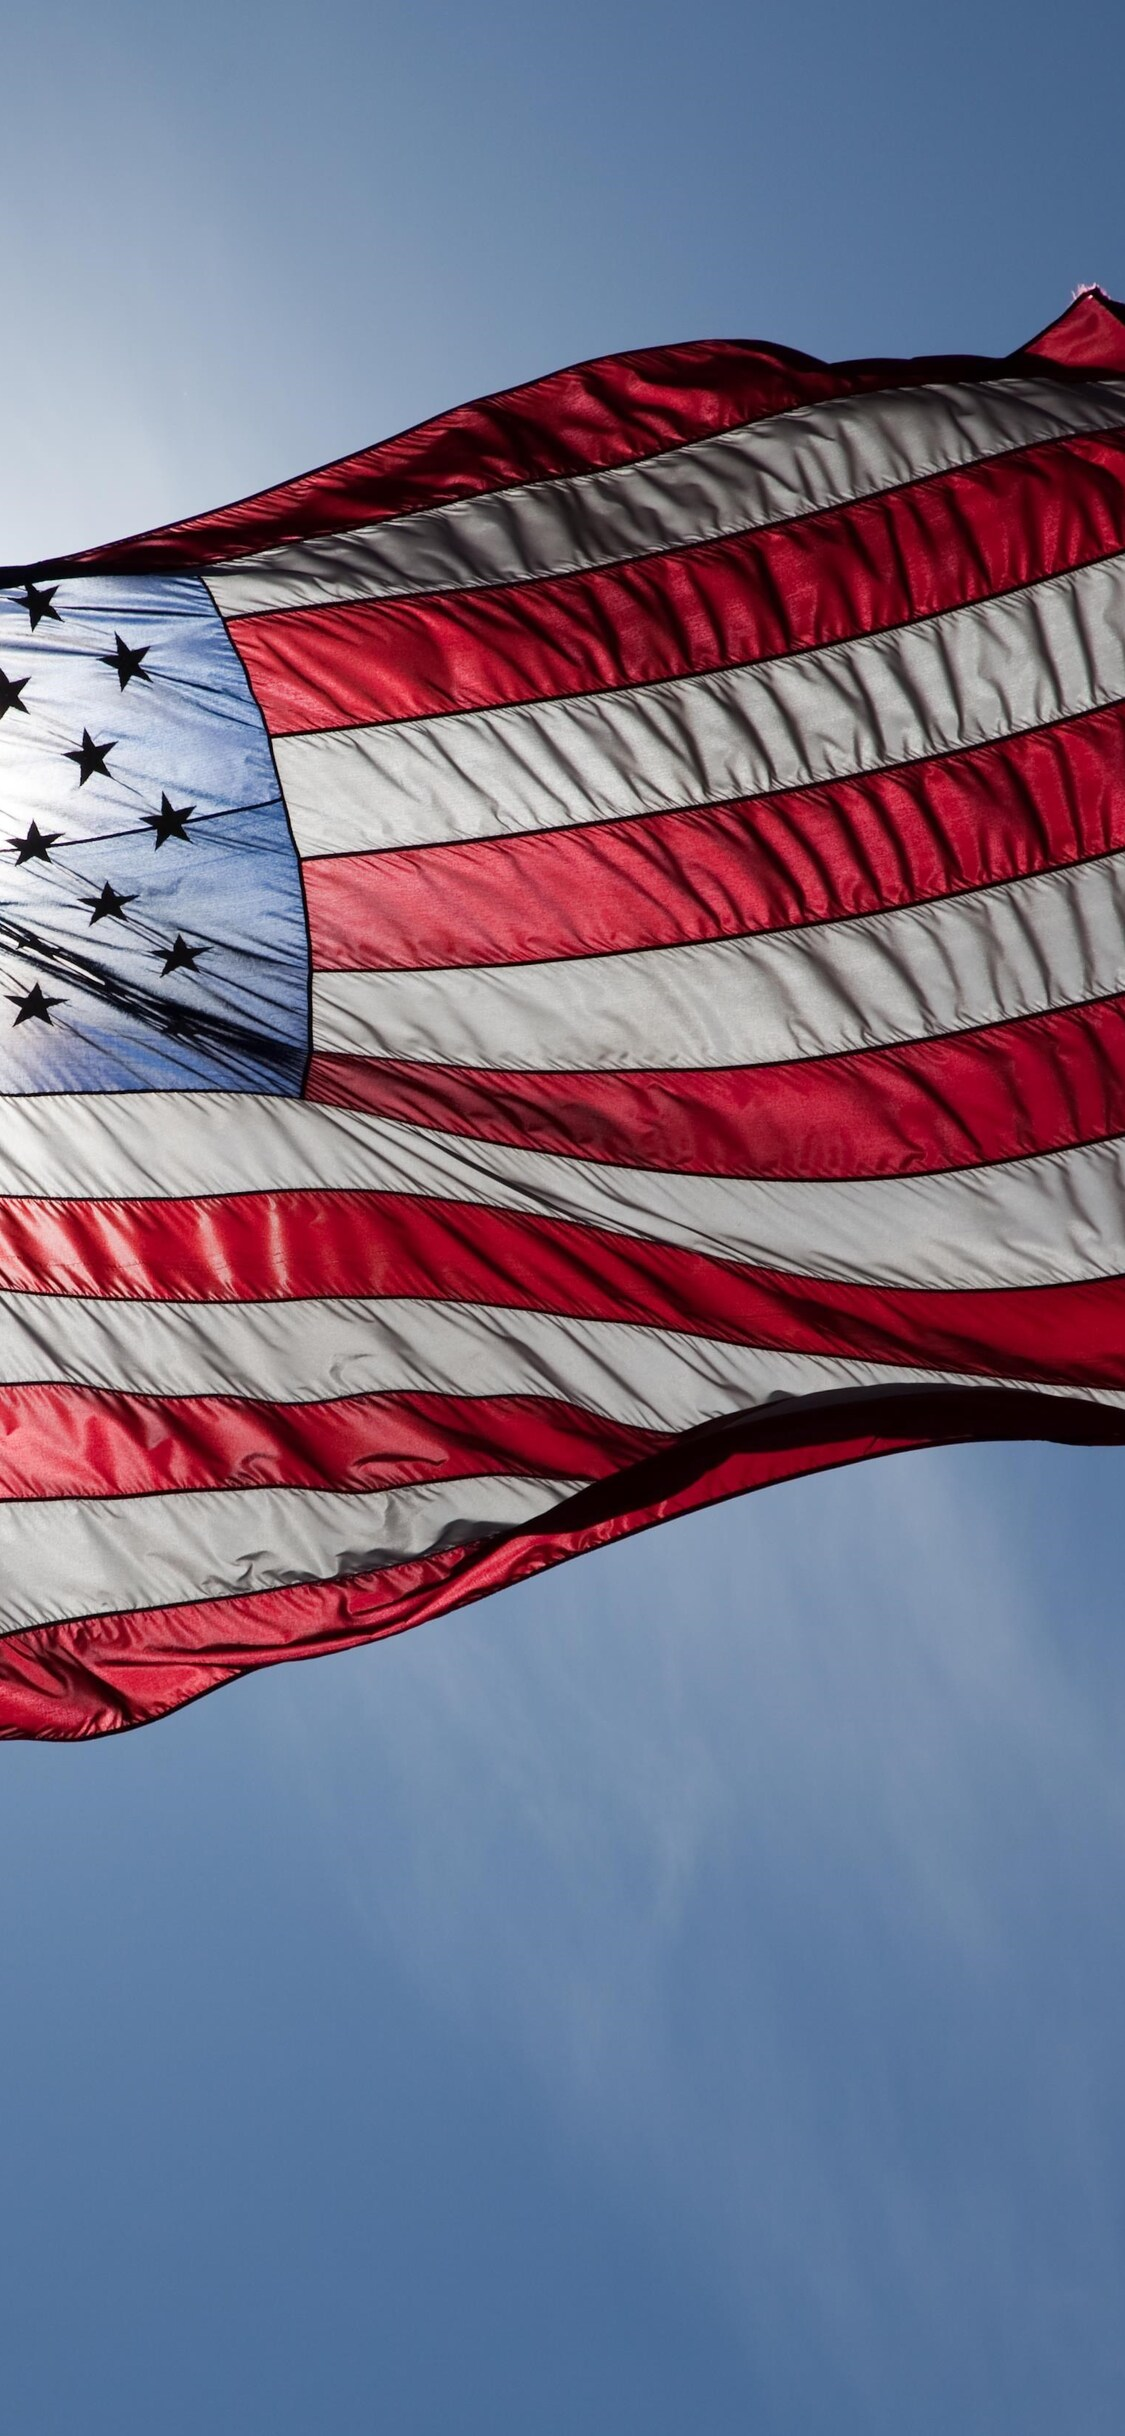 1125x2436 American Flag Iphone Xs Iphone 10 Iphone X Hd 4k Wallpapers Images Backgrounds Photos And Pictures